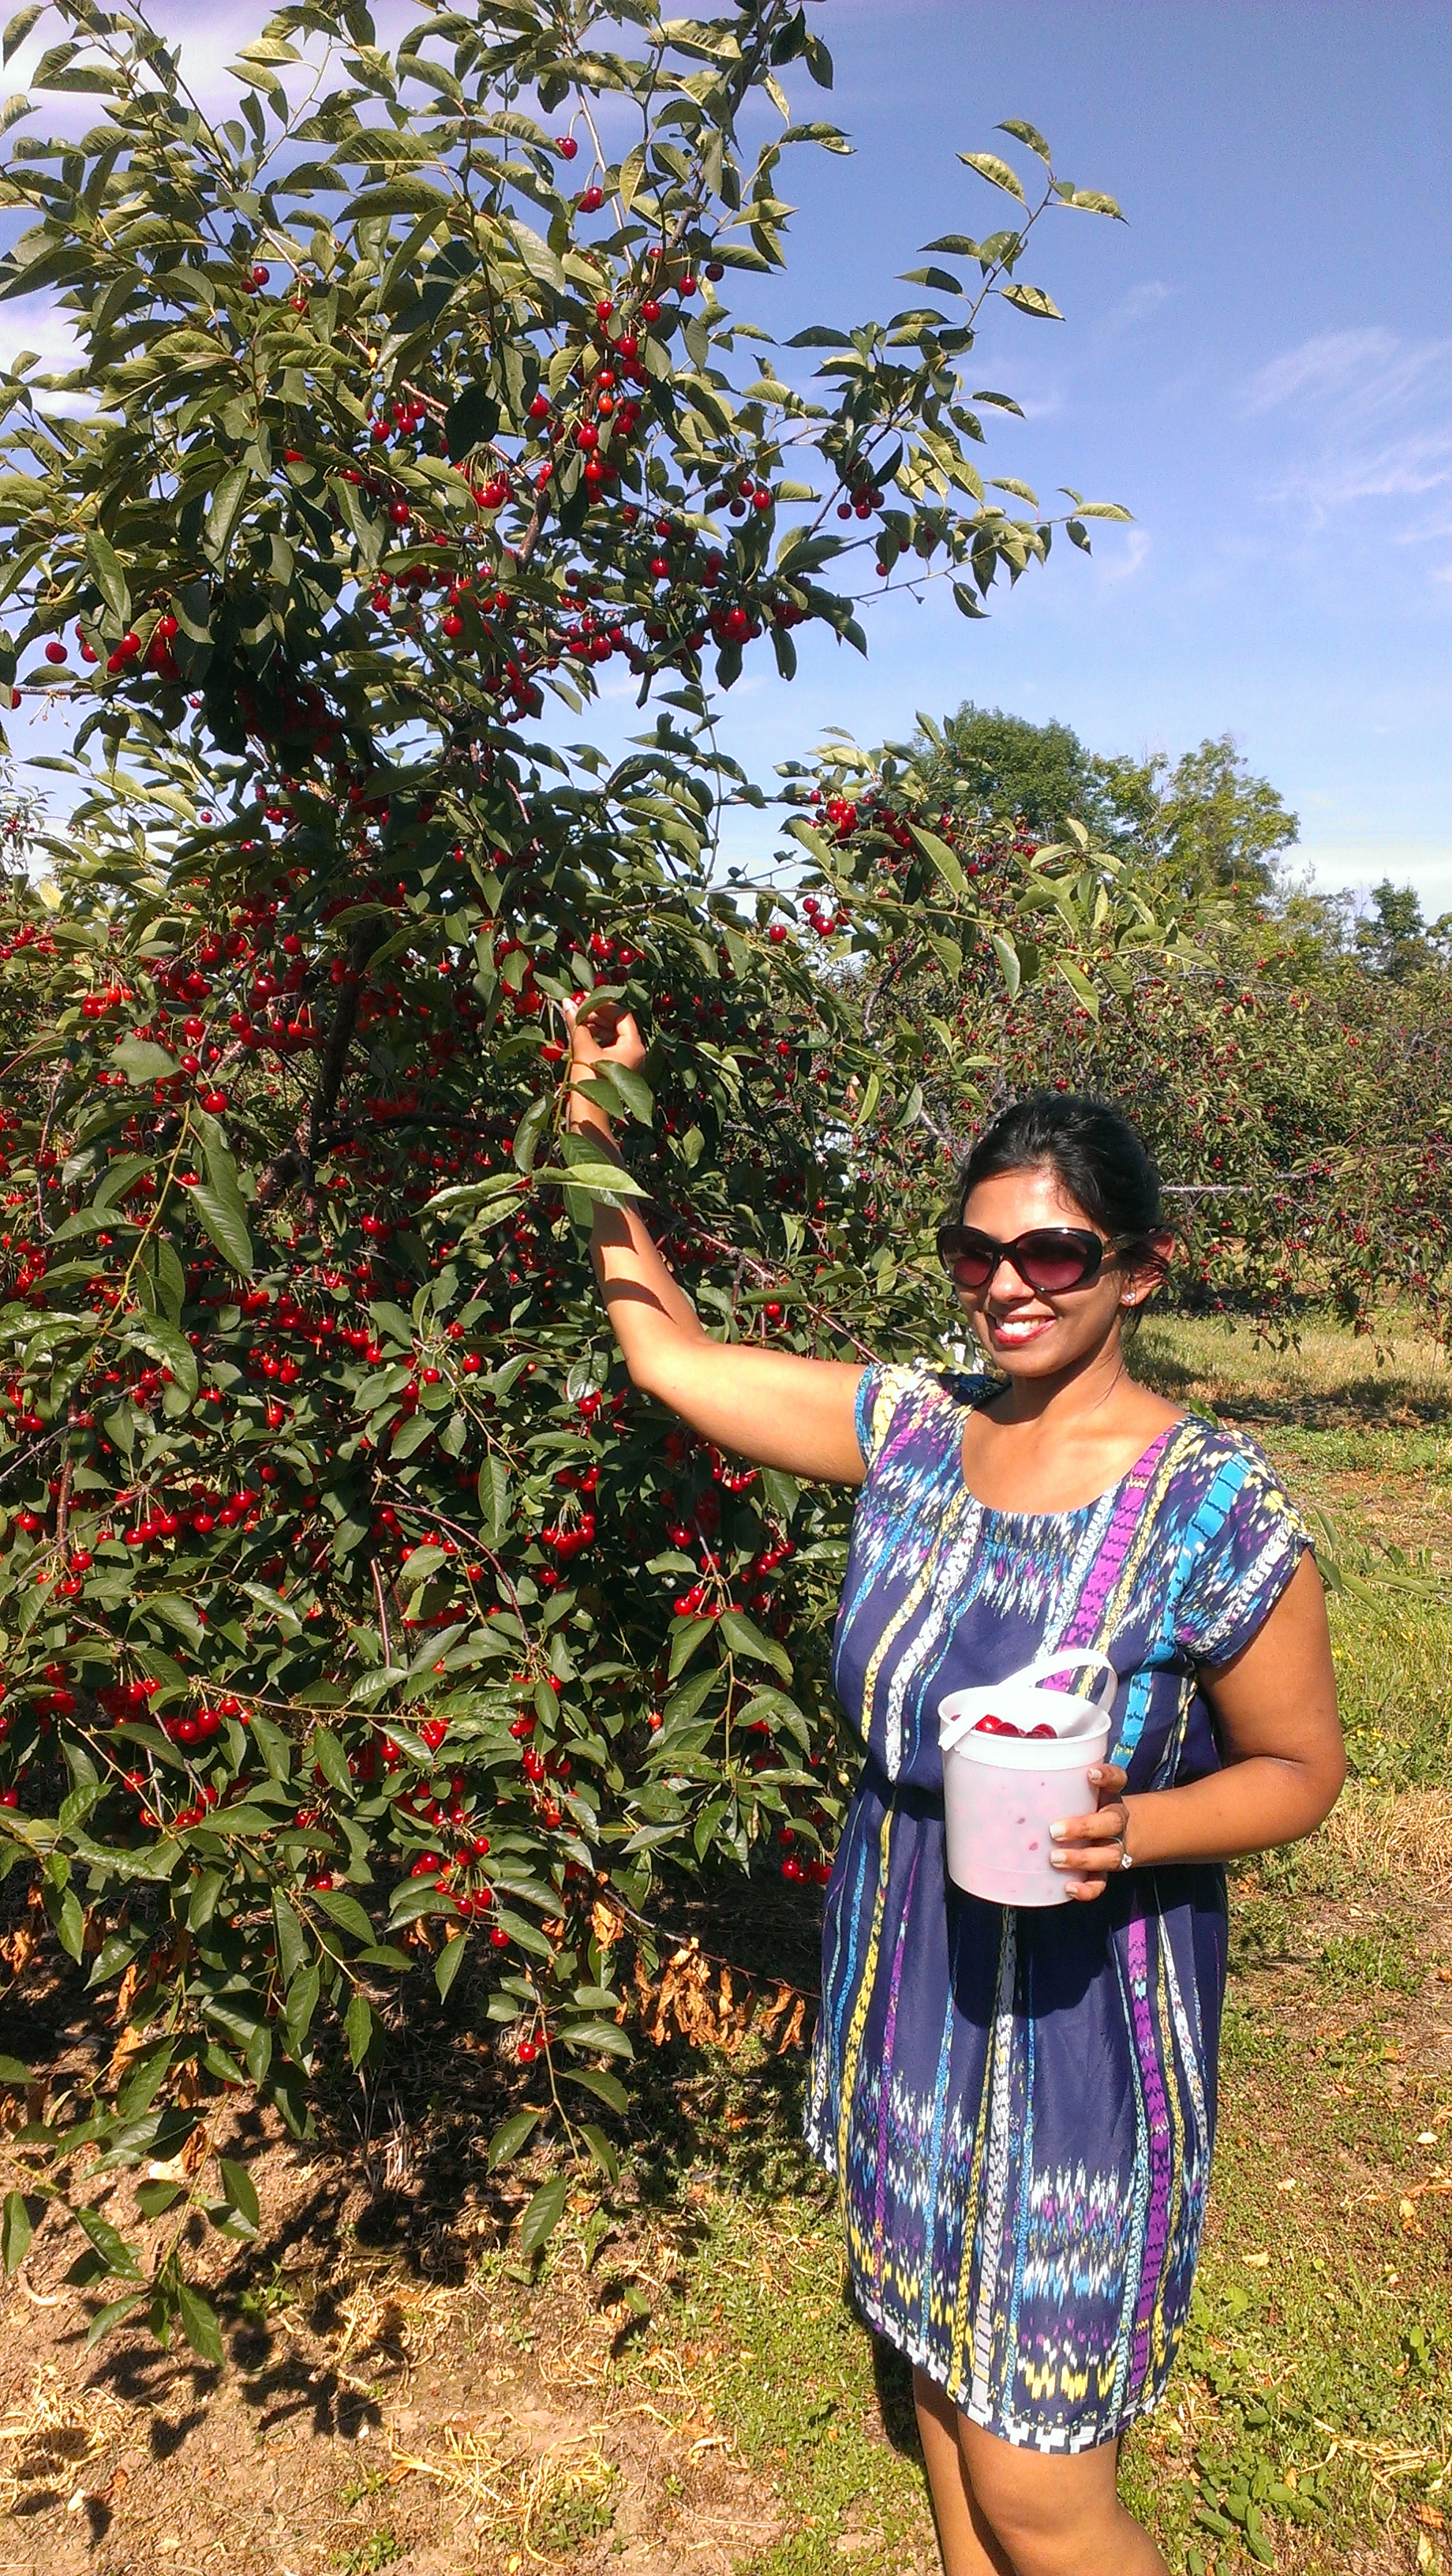 Door County, WI: 5 Ways to Have A Cherry Good Time